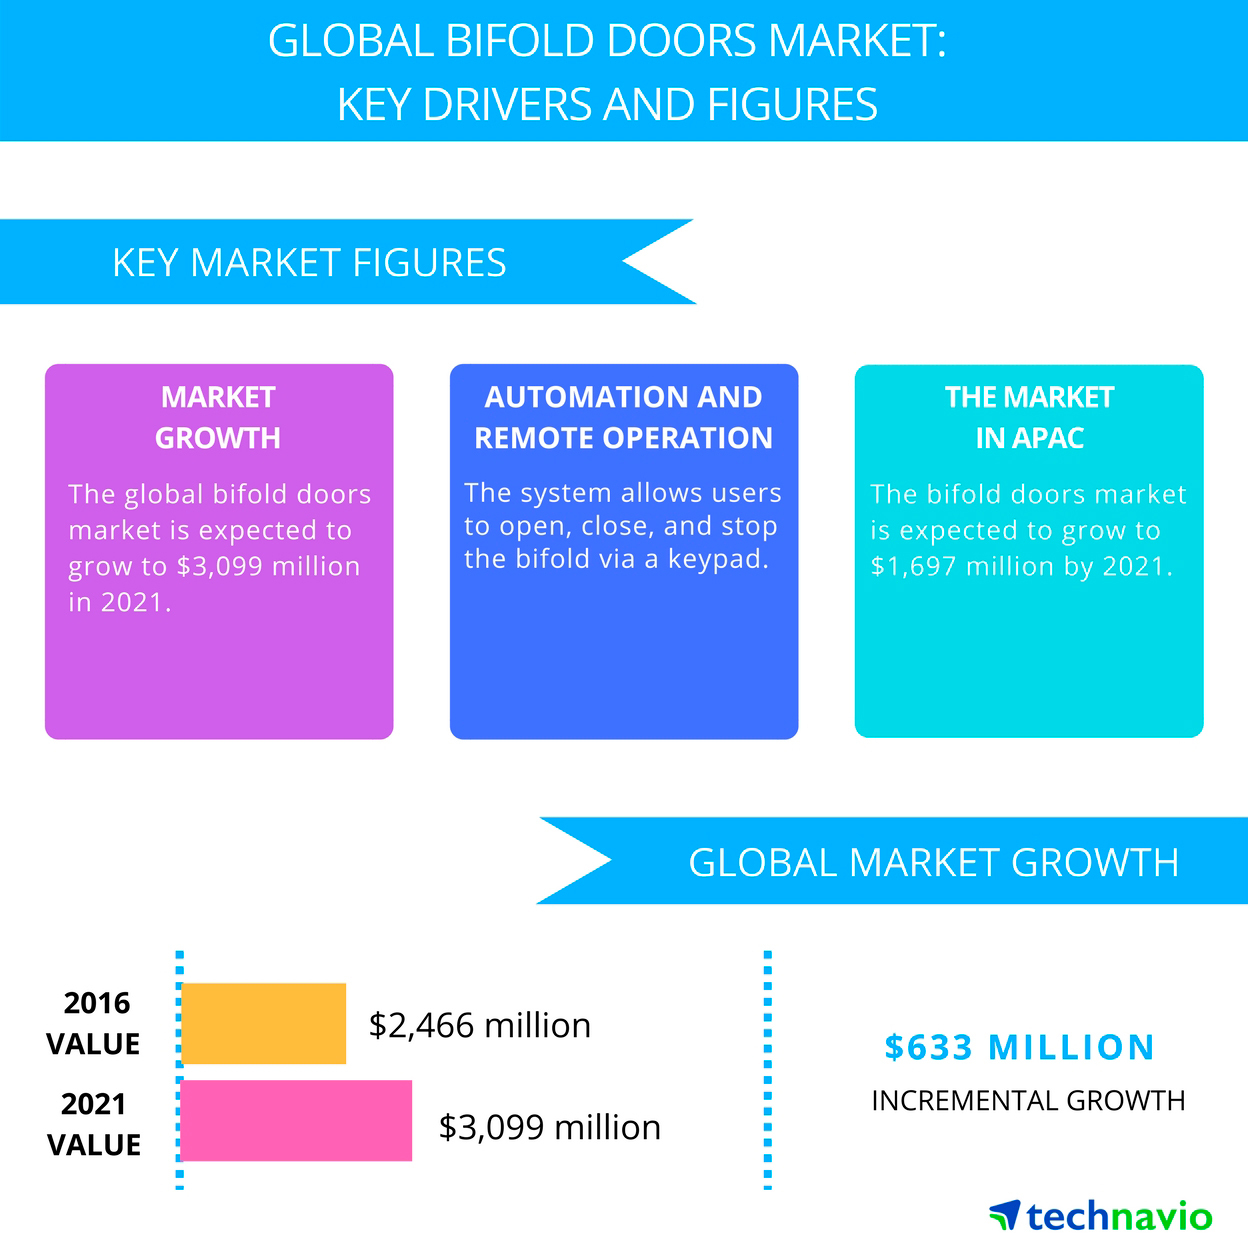 Technavio has published a new report on the global bifold doors market from 2017-2021.